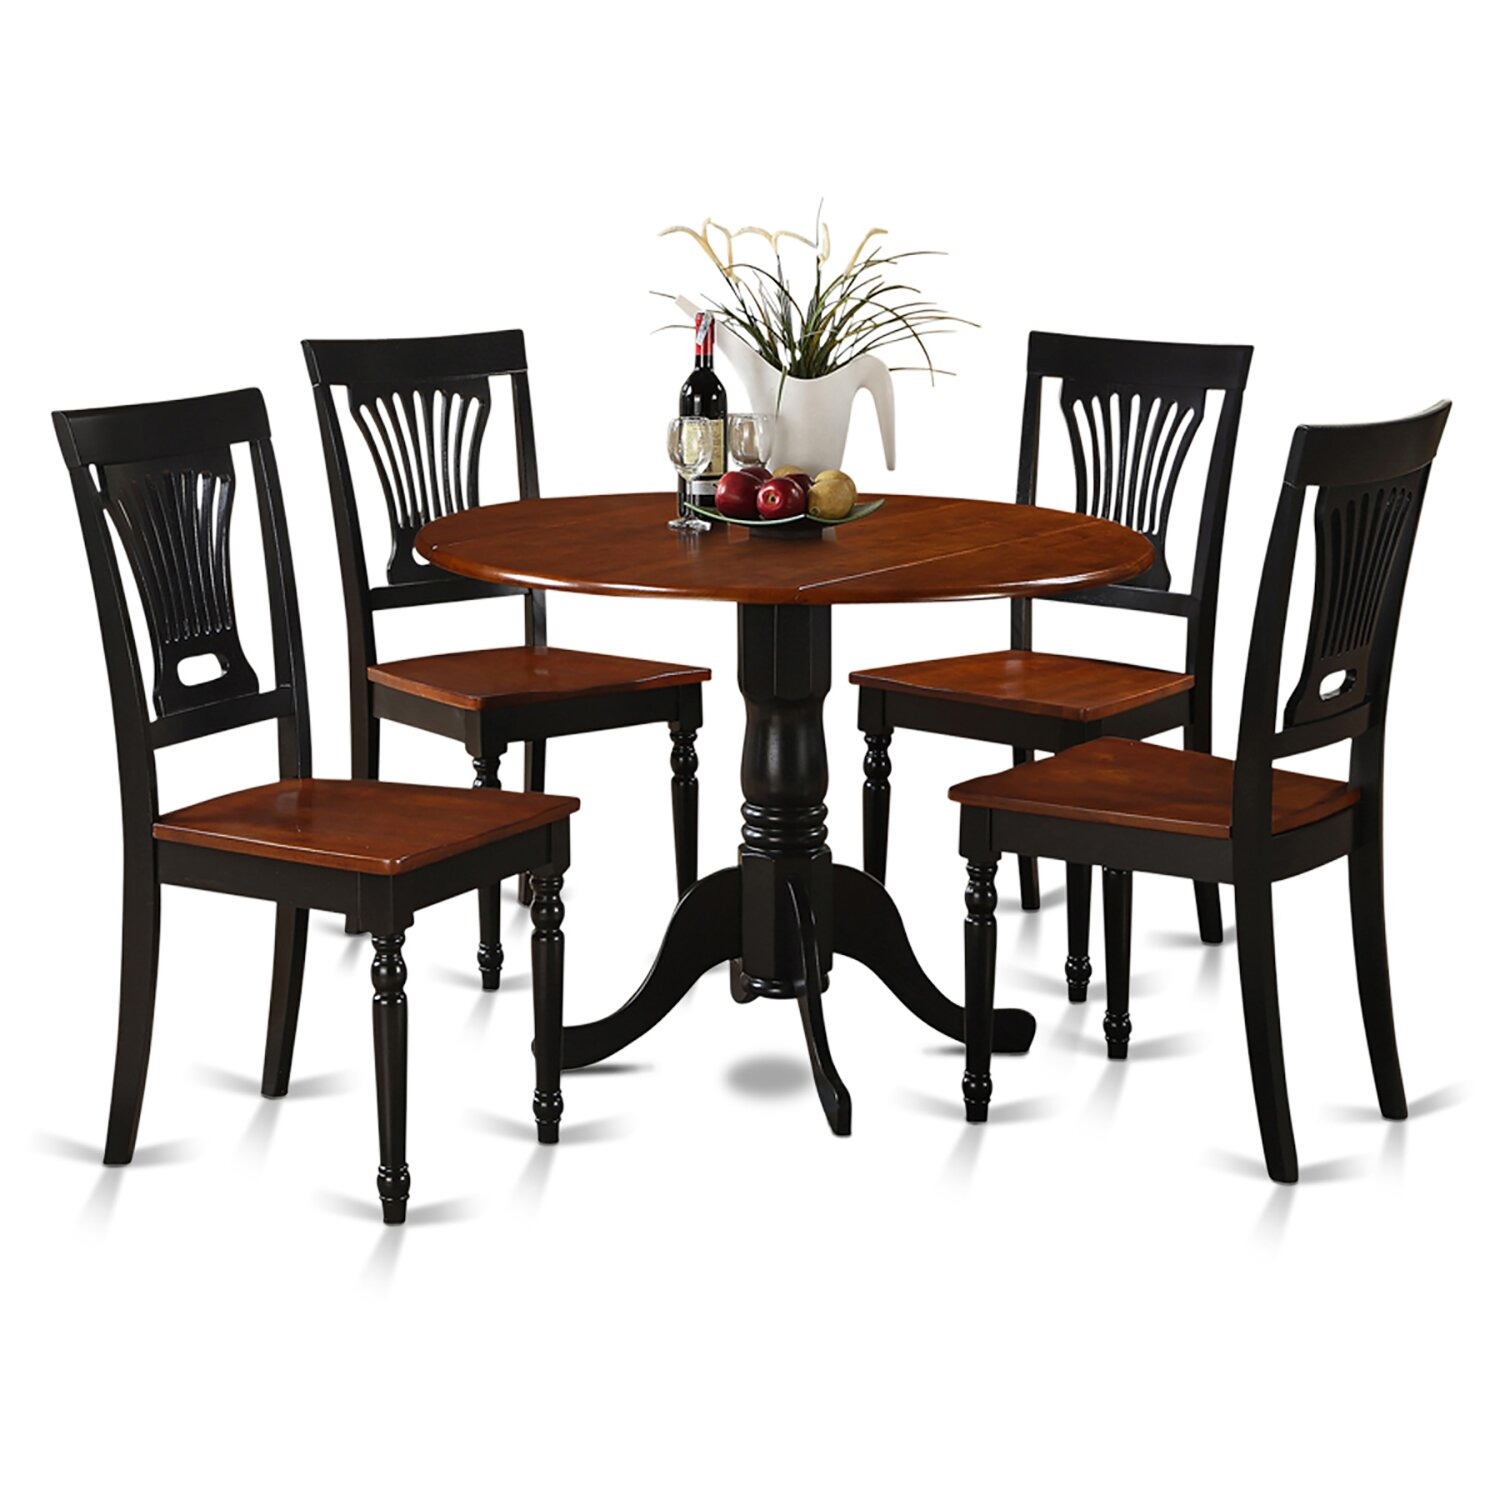 Wooden Importers Dublin 5 Piece Dining Set & Reviews